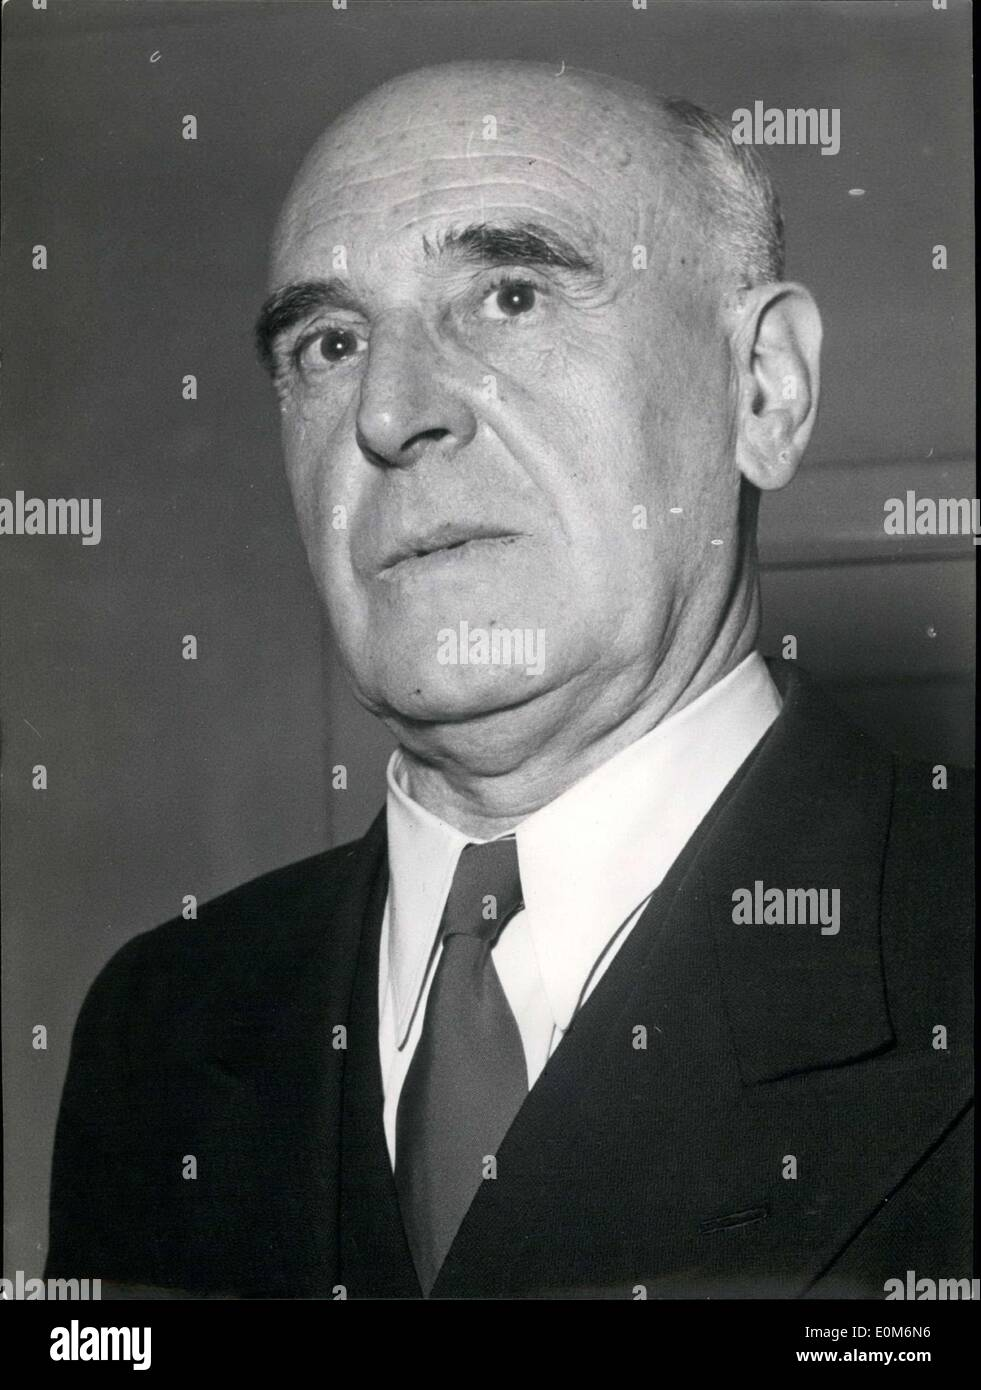 Oct. 26, 1953 - Pictured is the successor to Waldemar Kraft, Dr. Carl Sch?fer. He succeeded Kraft as president of the Bank of Danzig. - Stock Image